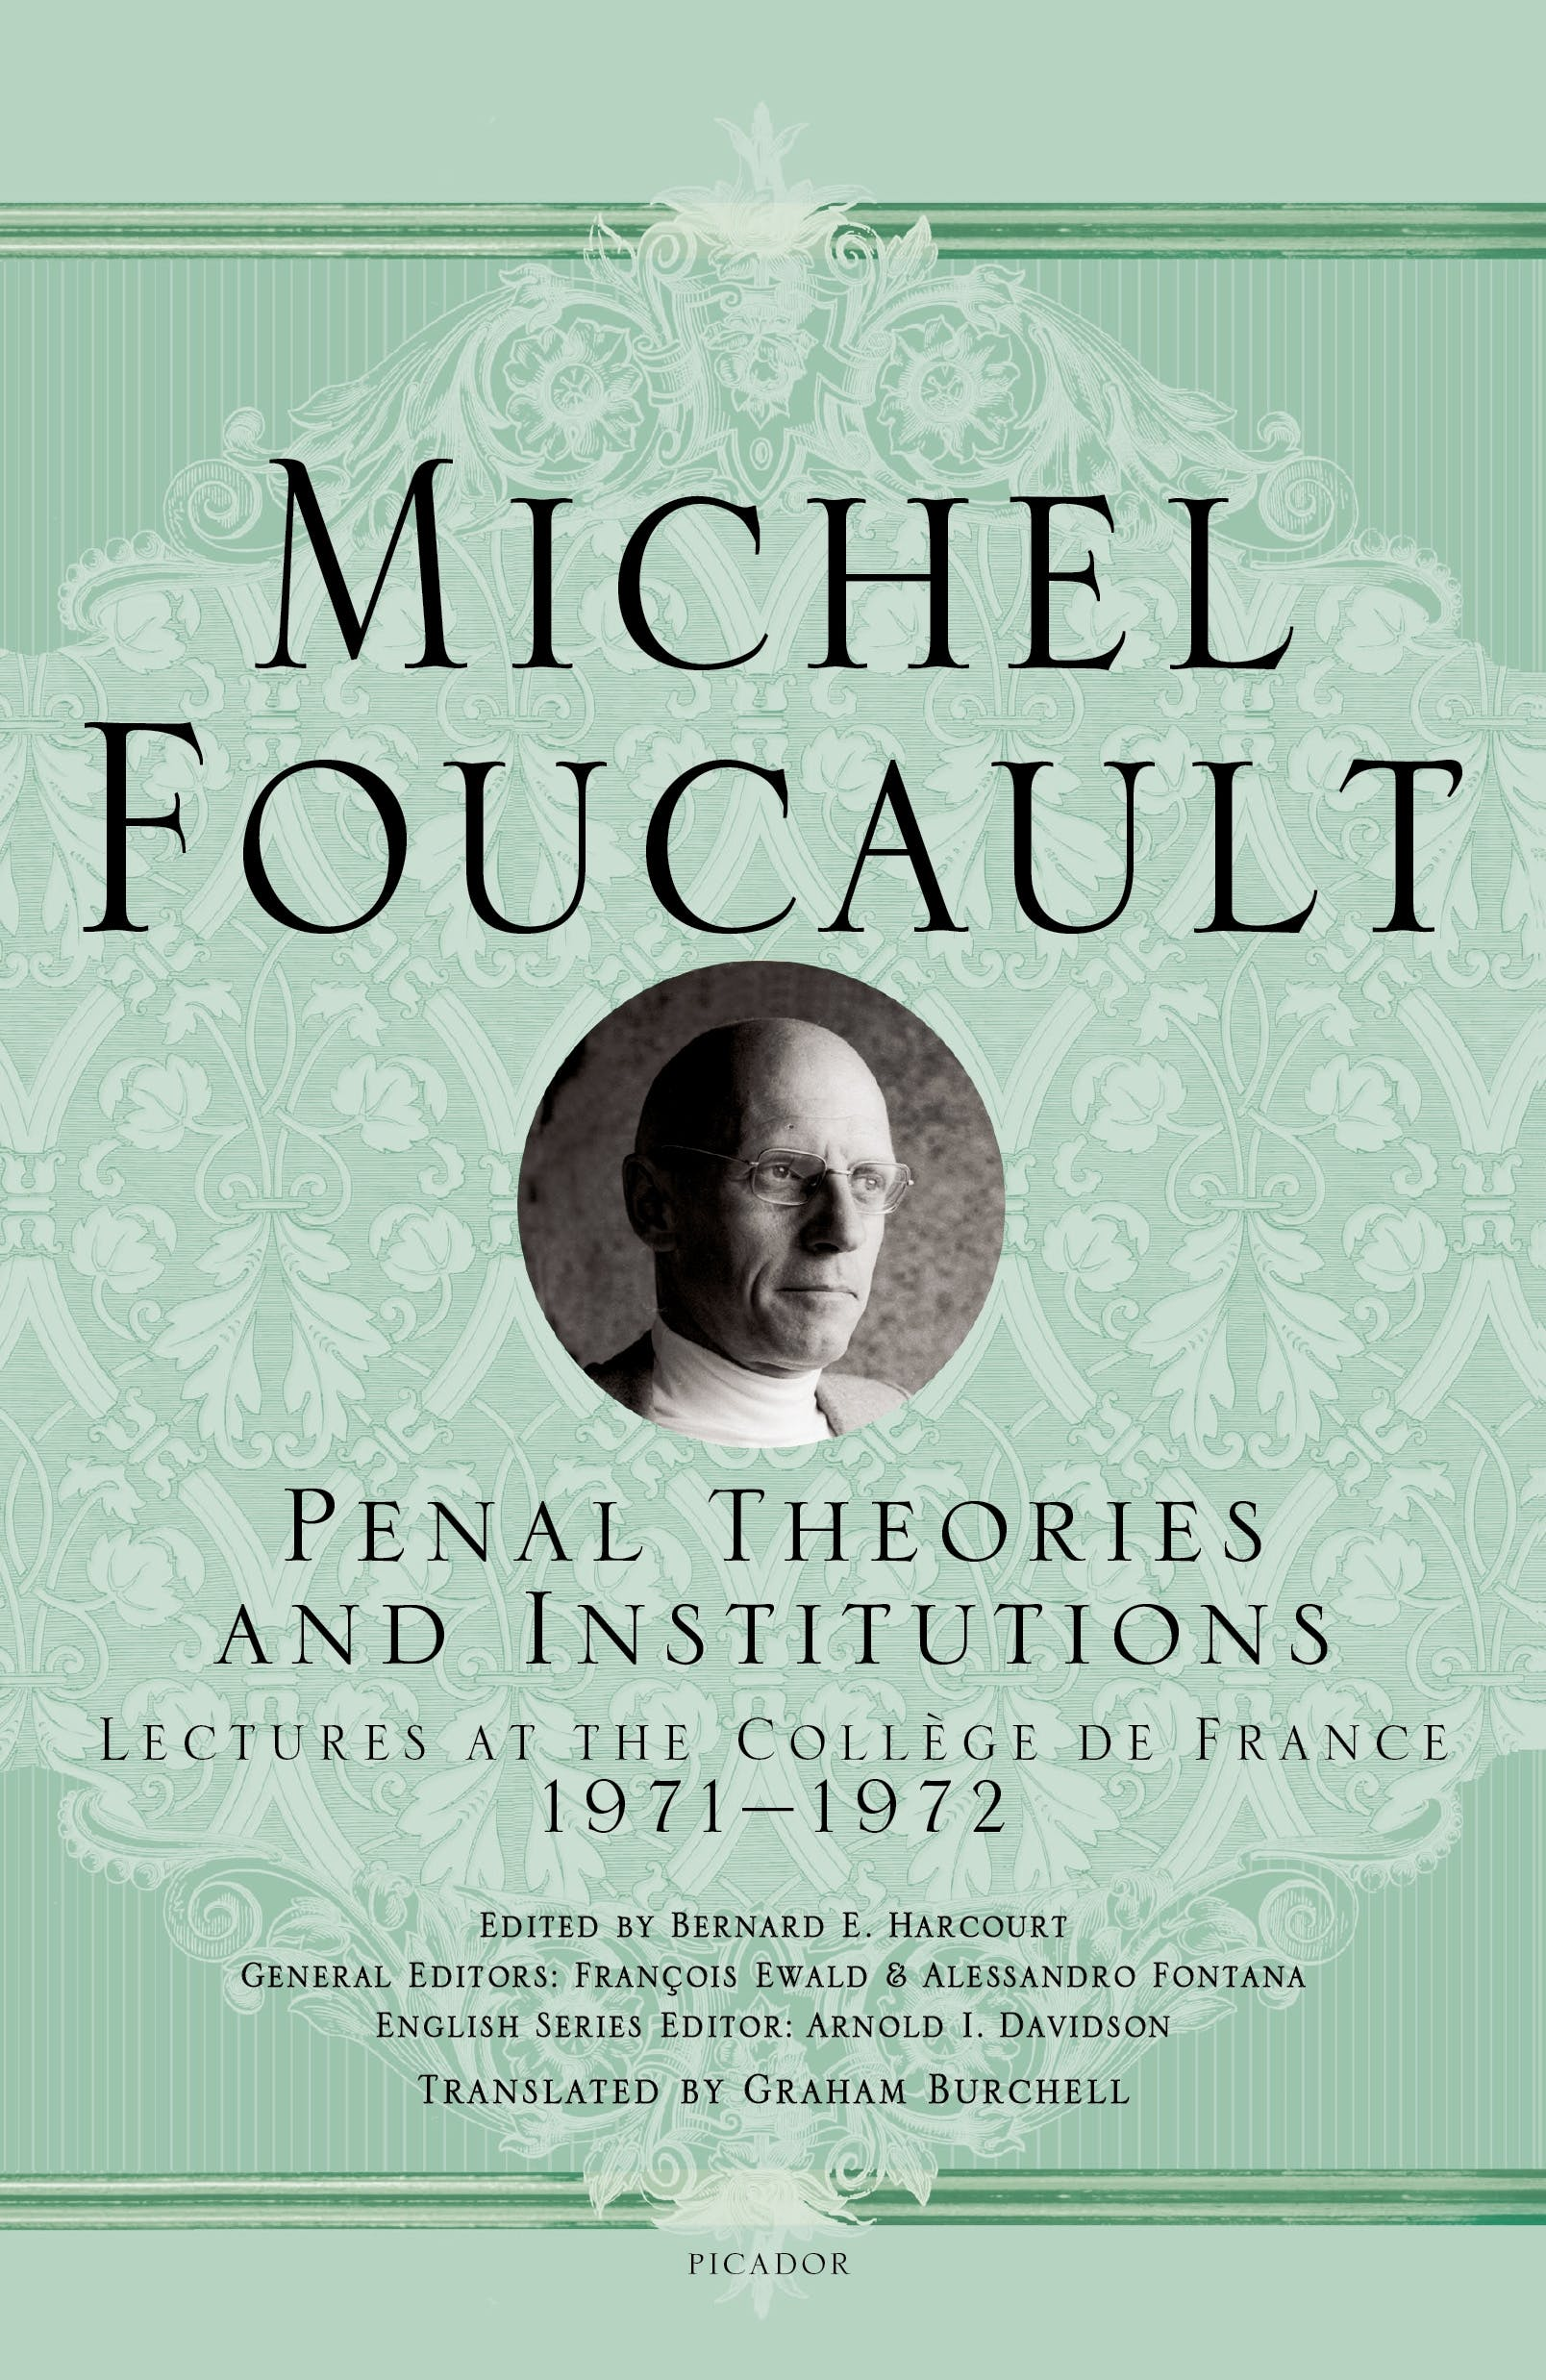 Image of Penal Theories and Institutions